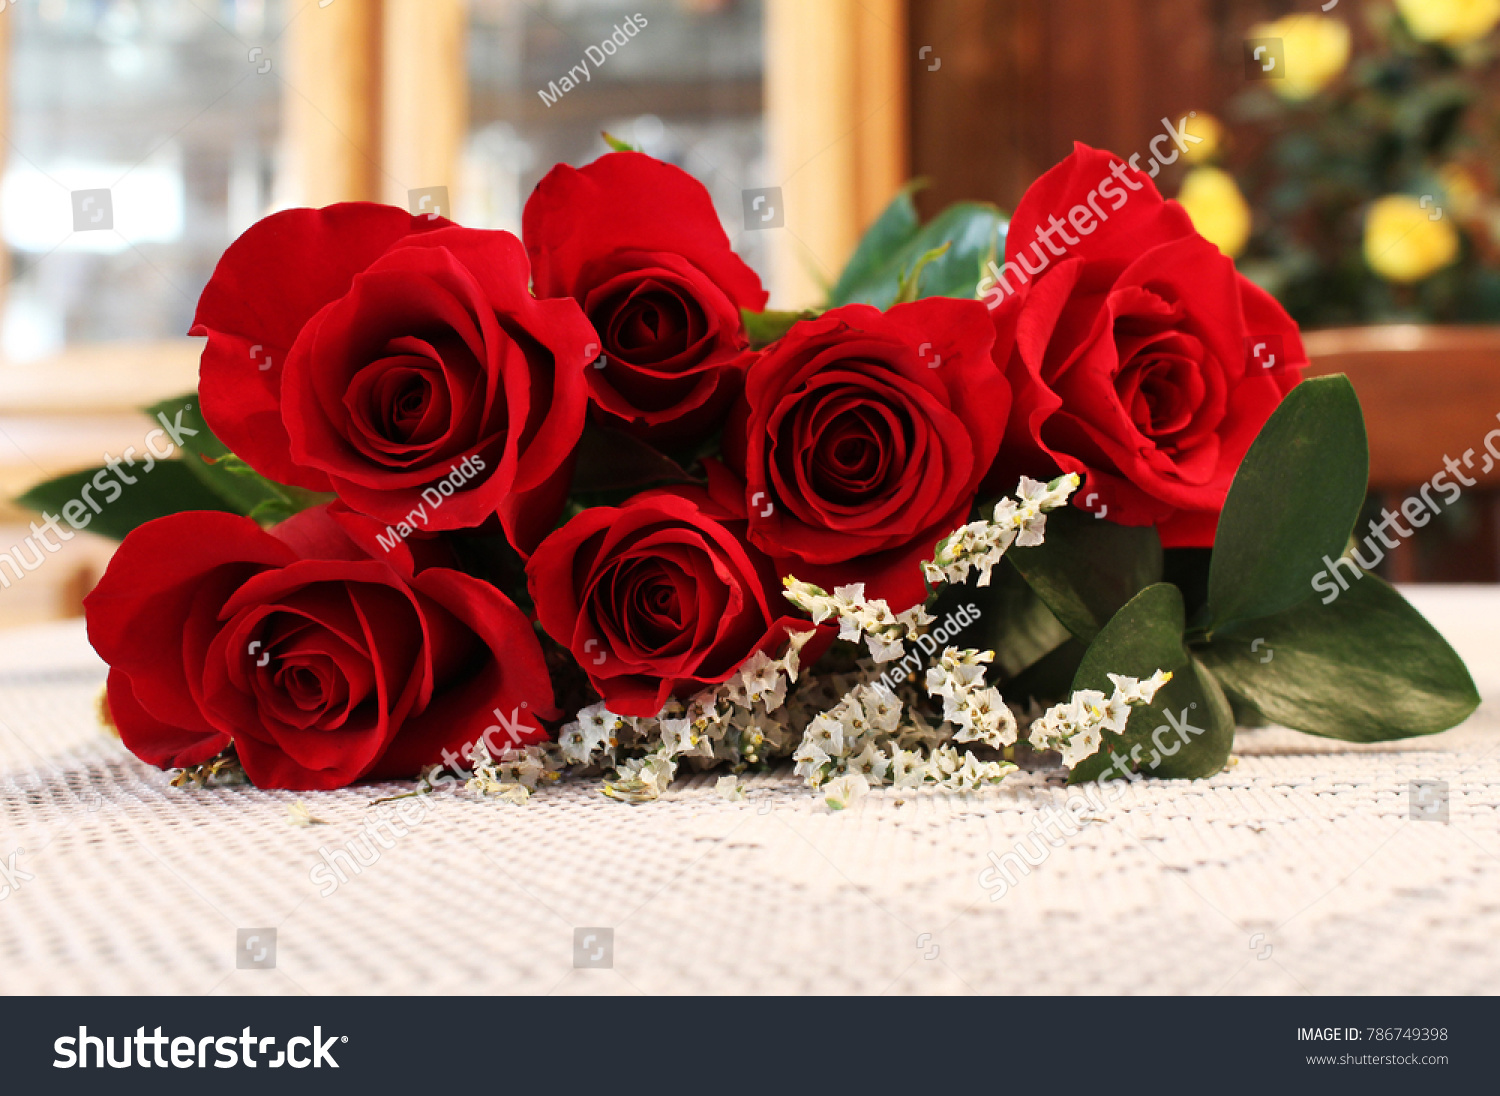 Pretty Red Roses Stock Photo Edit Now 786749398 Shutterstock